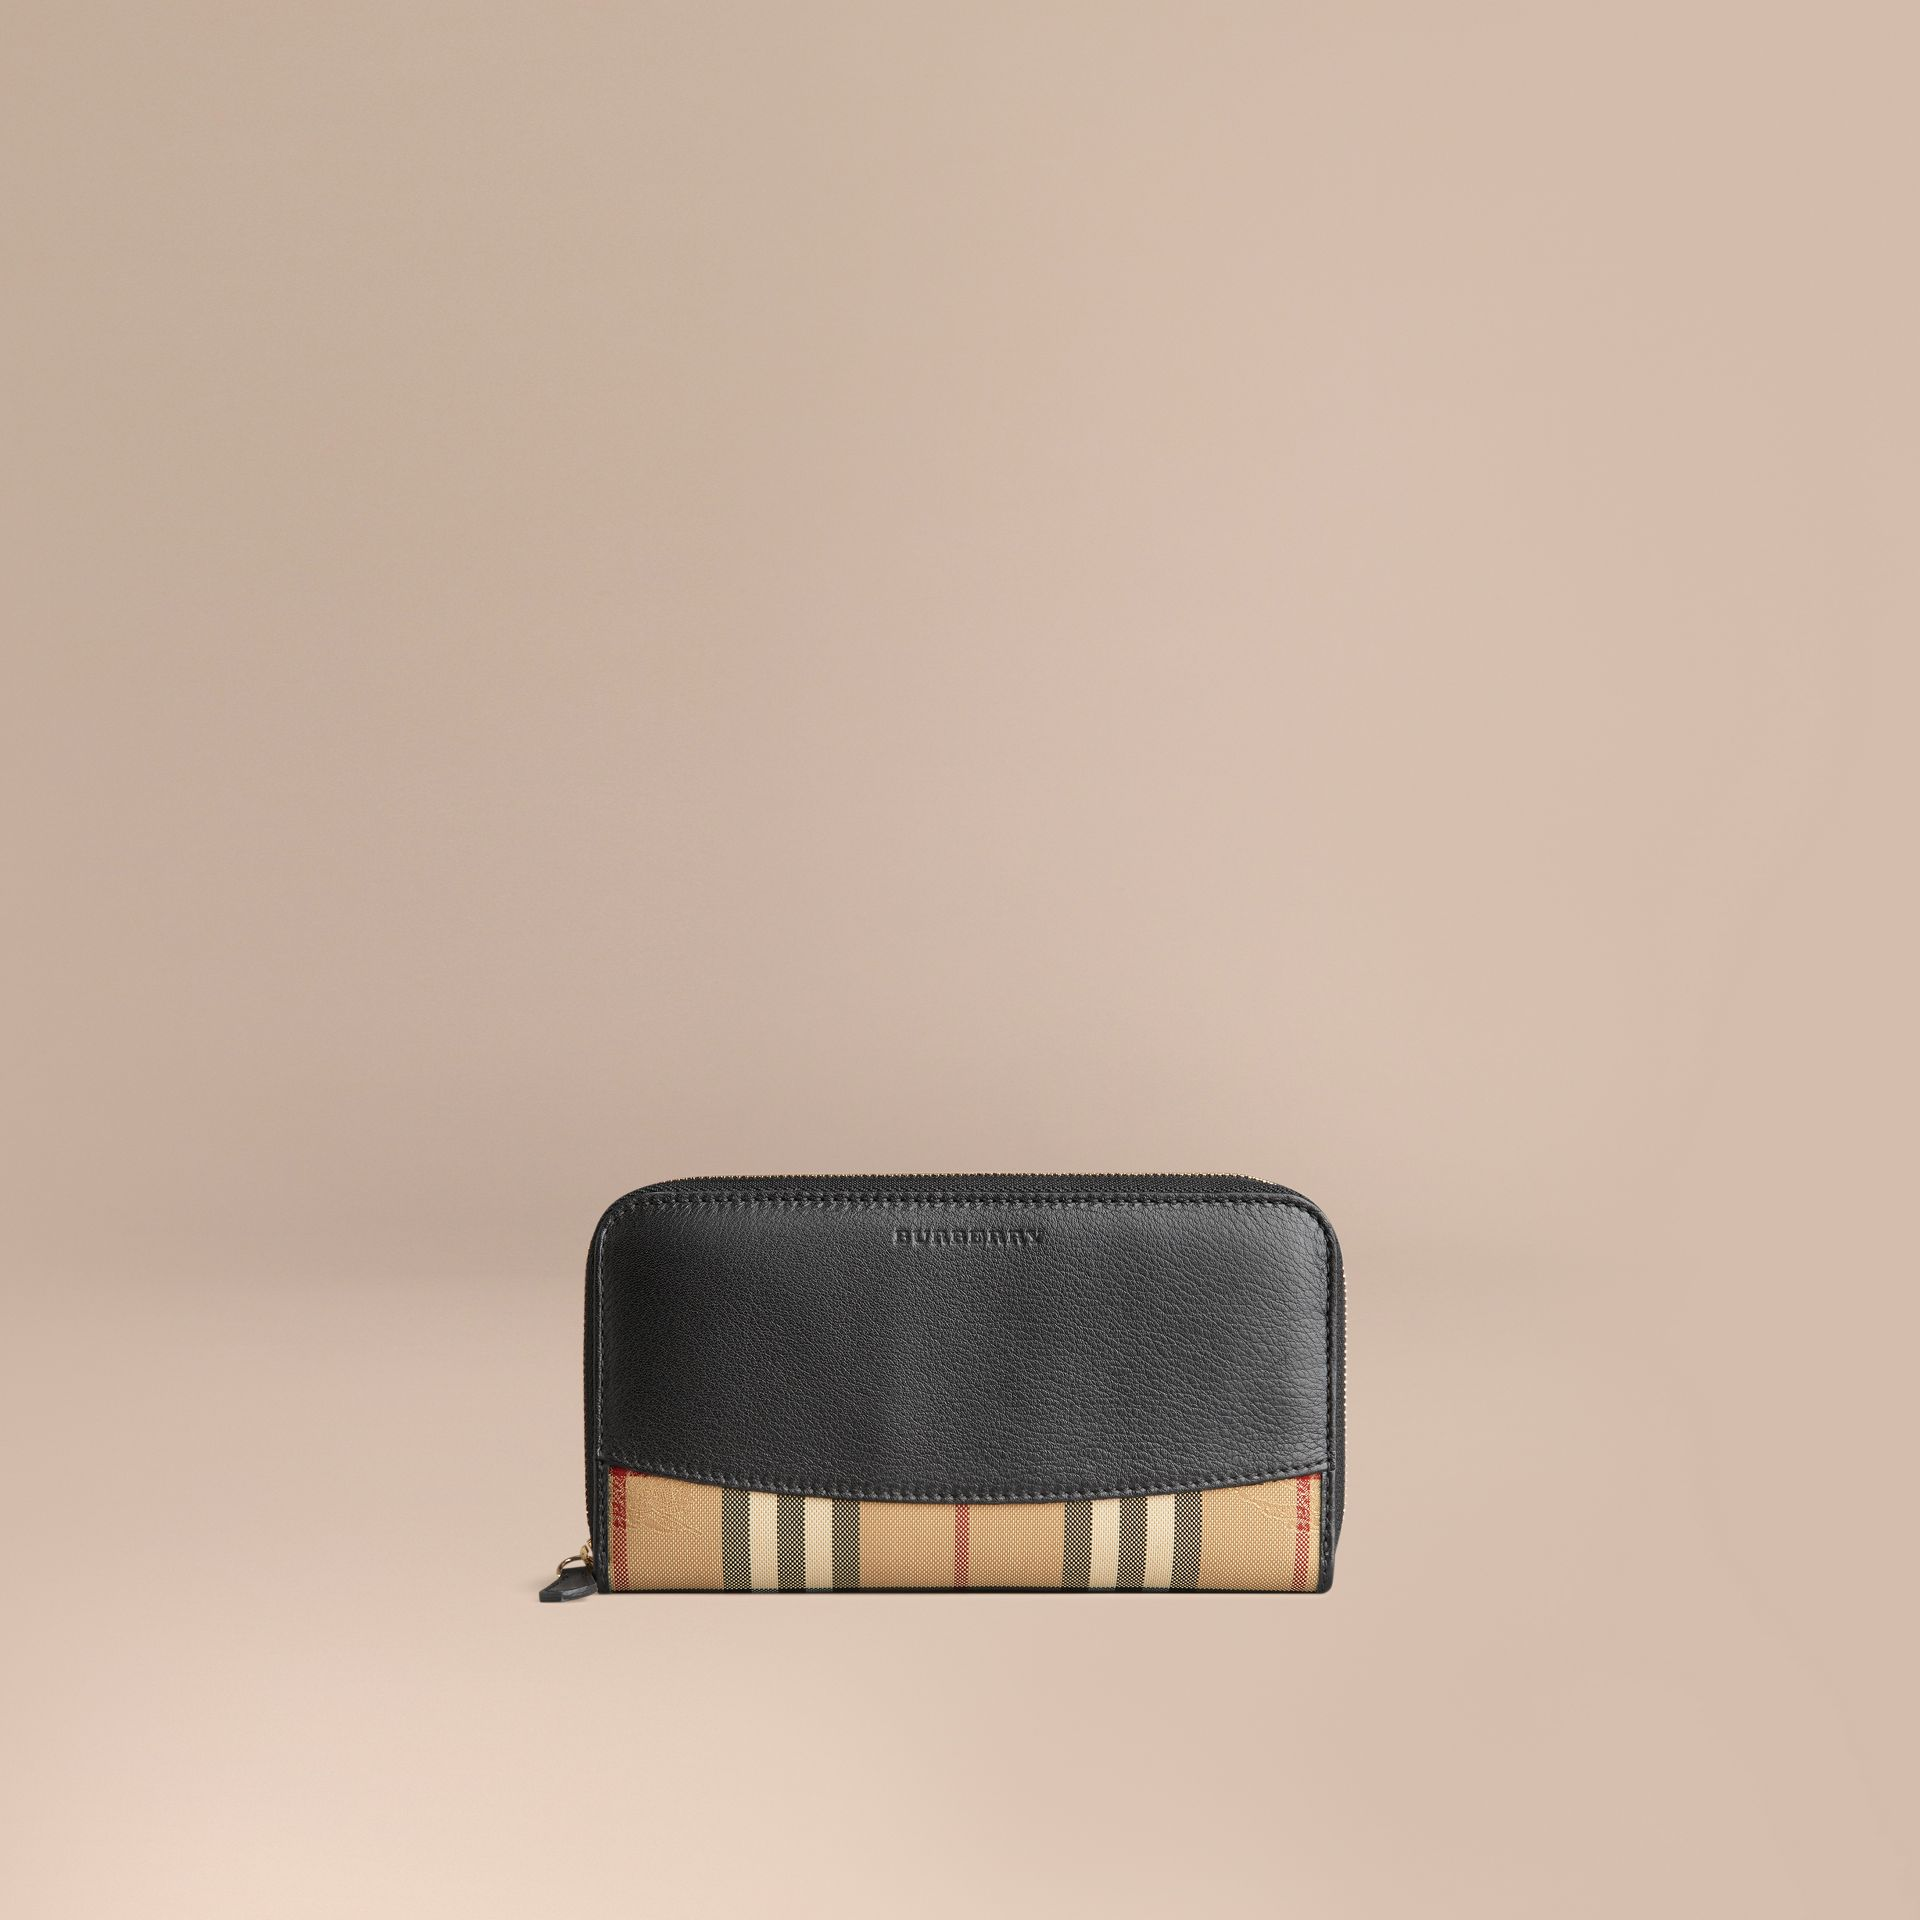 Horseferry Check and Leather Ziparound Wallet in Black - Women | Burberry Singapore - gallery image 1